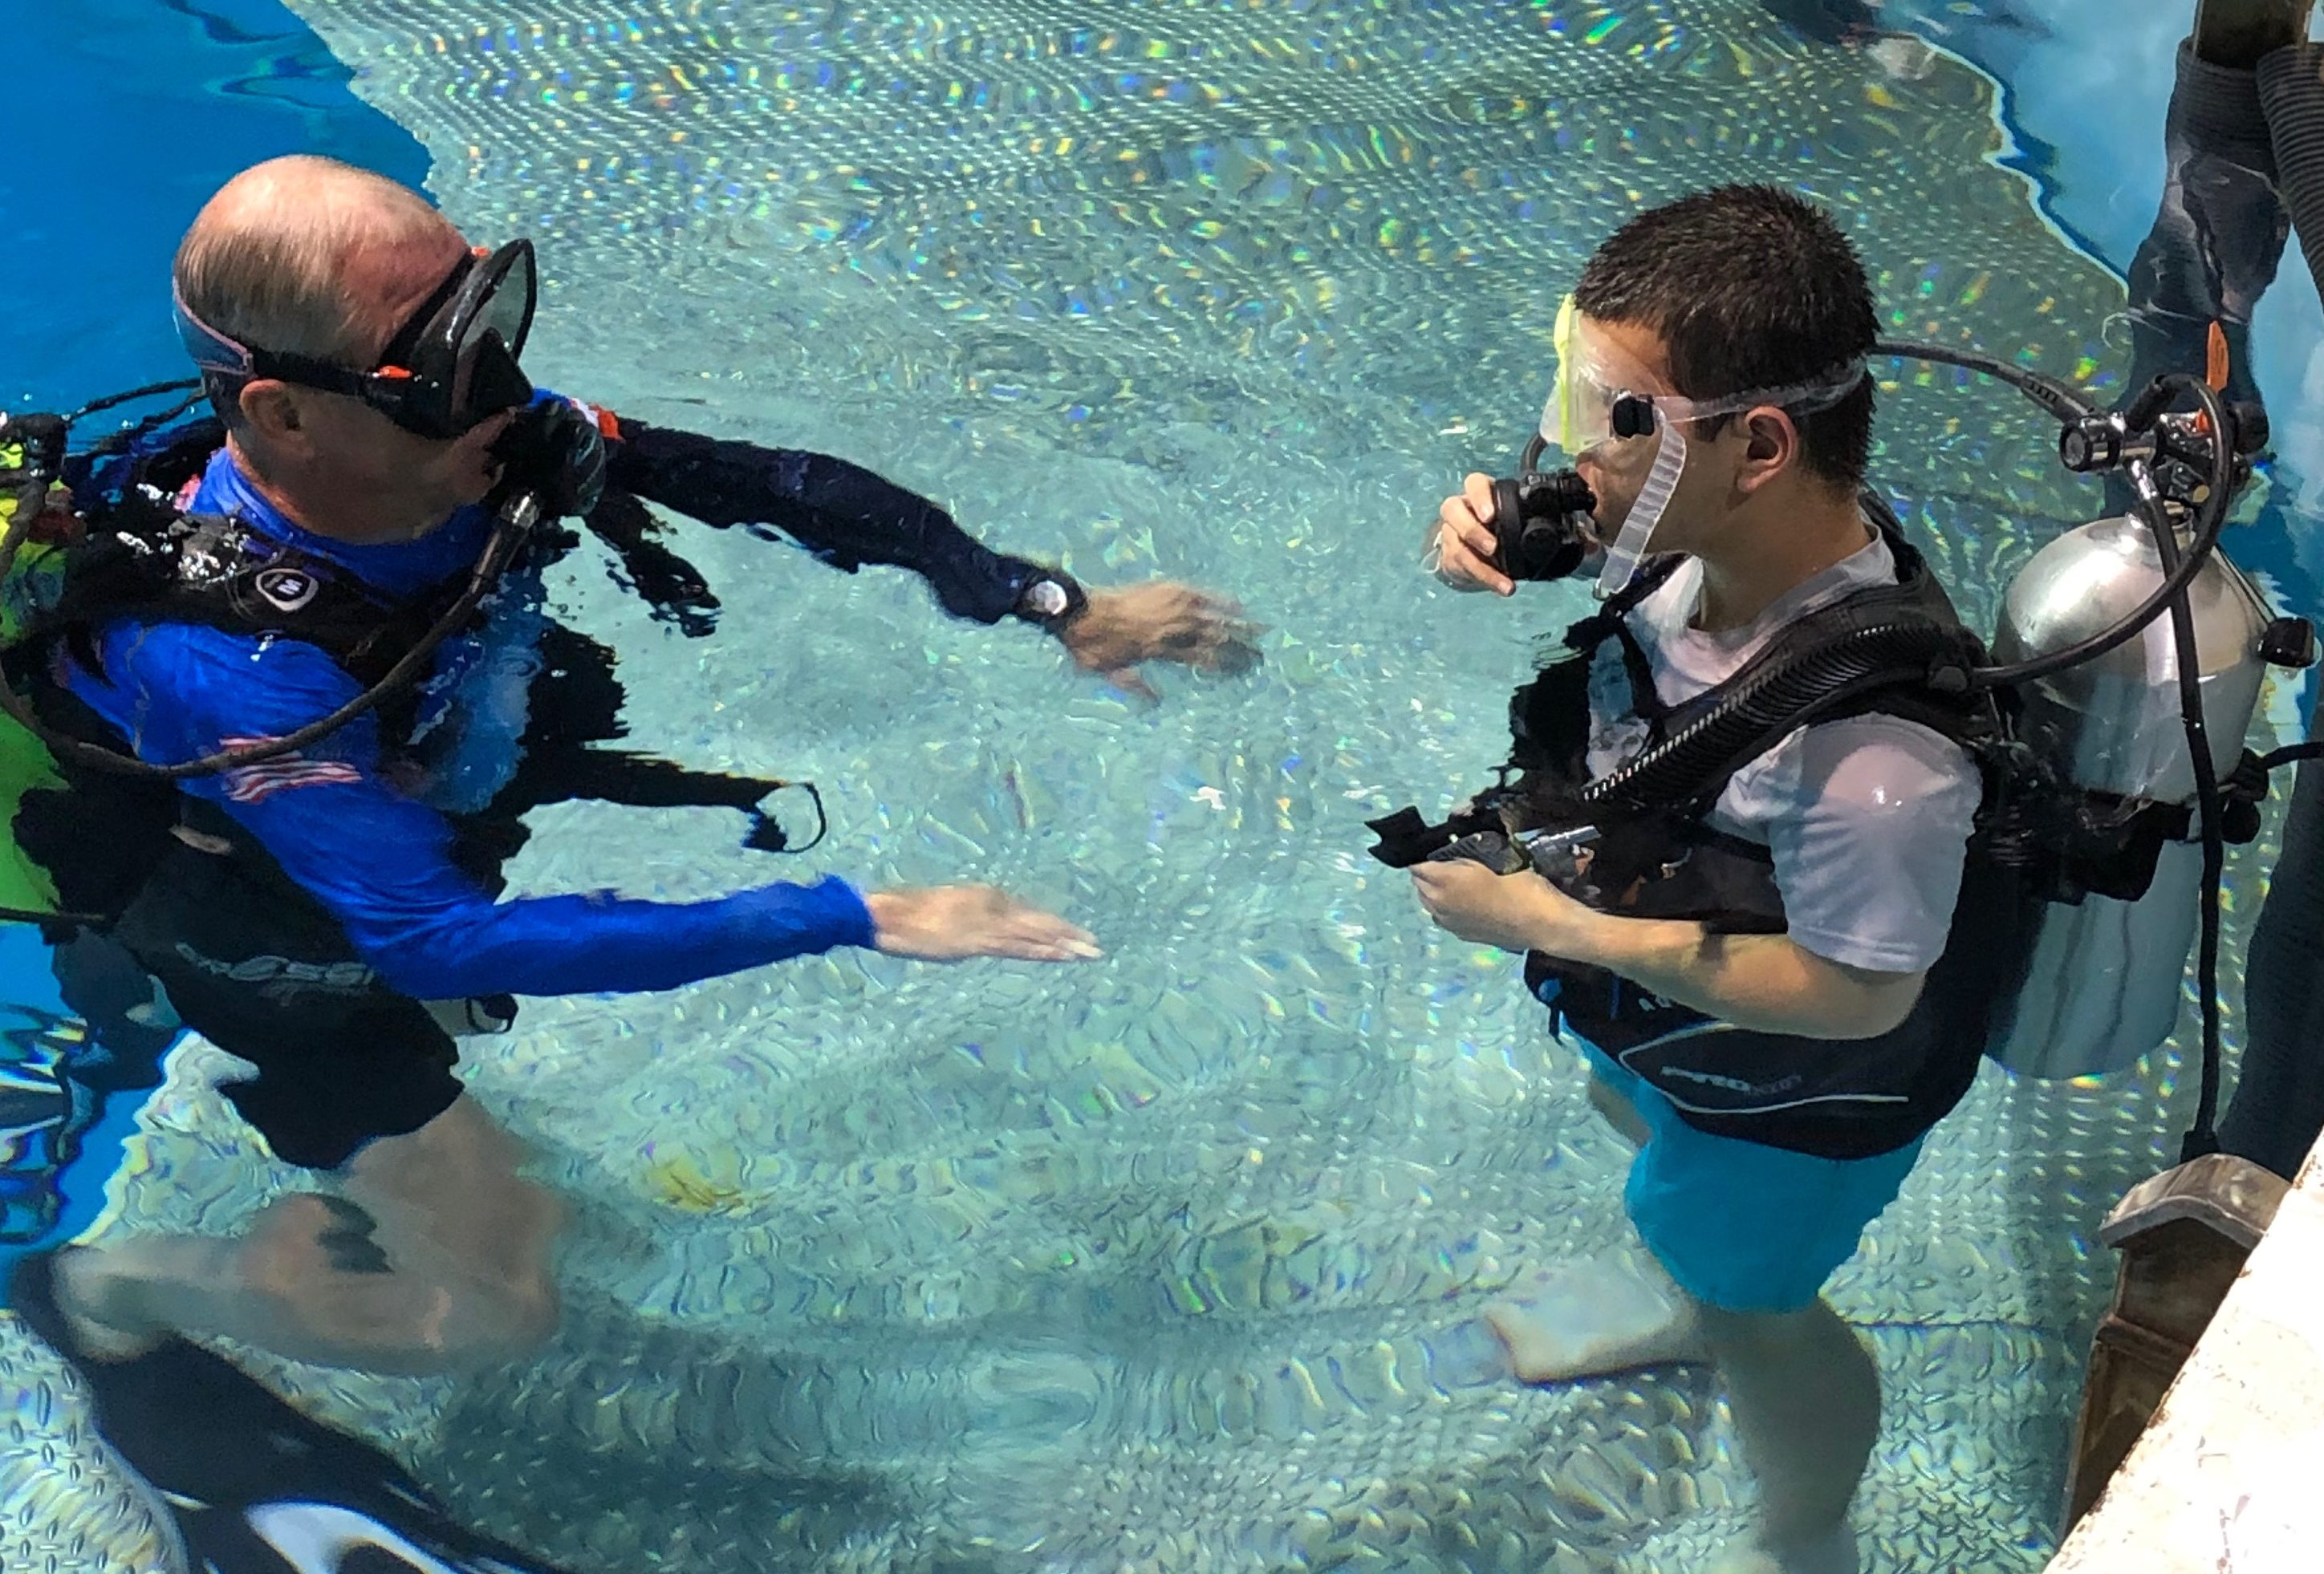 Rich standing in water, wearing scuba gear and listening to an instructor provide directions.